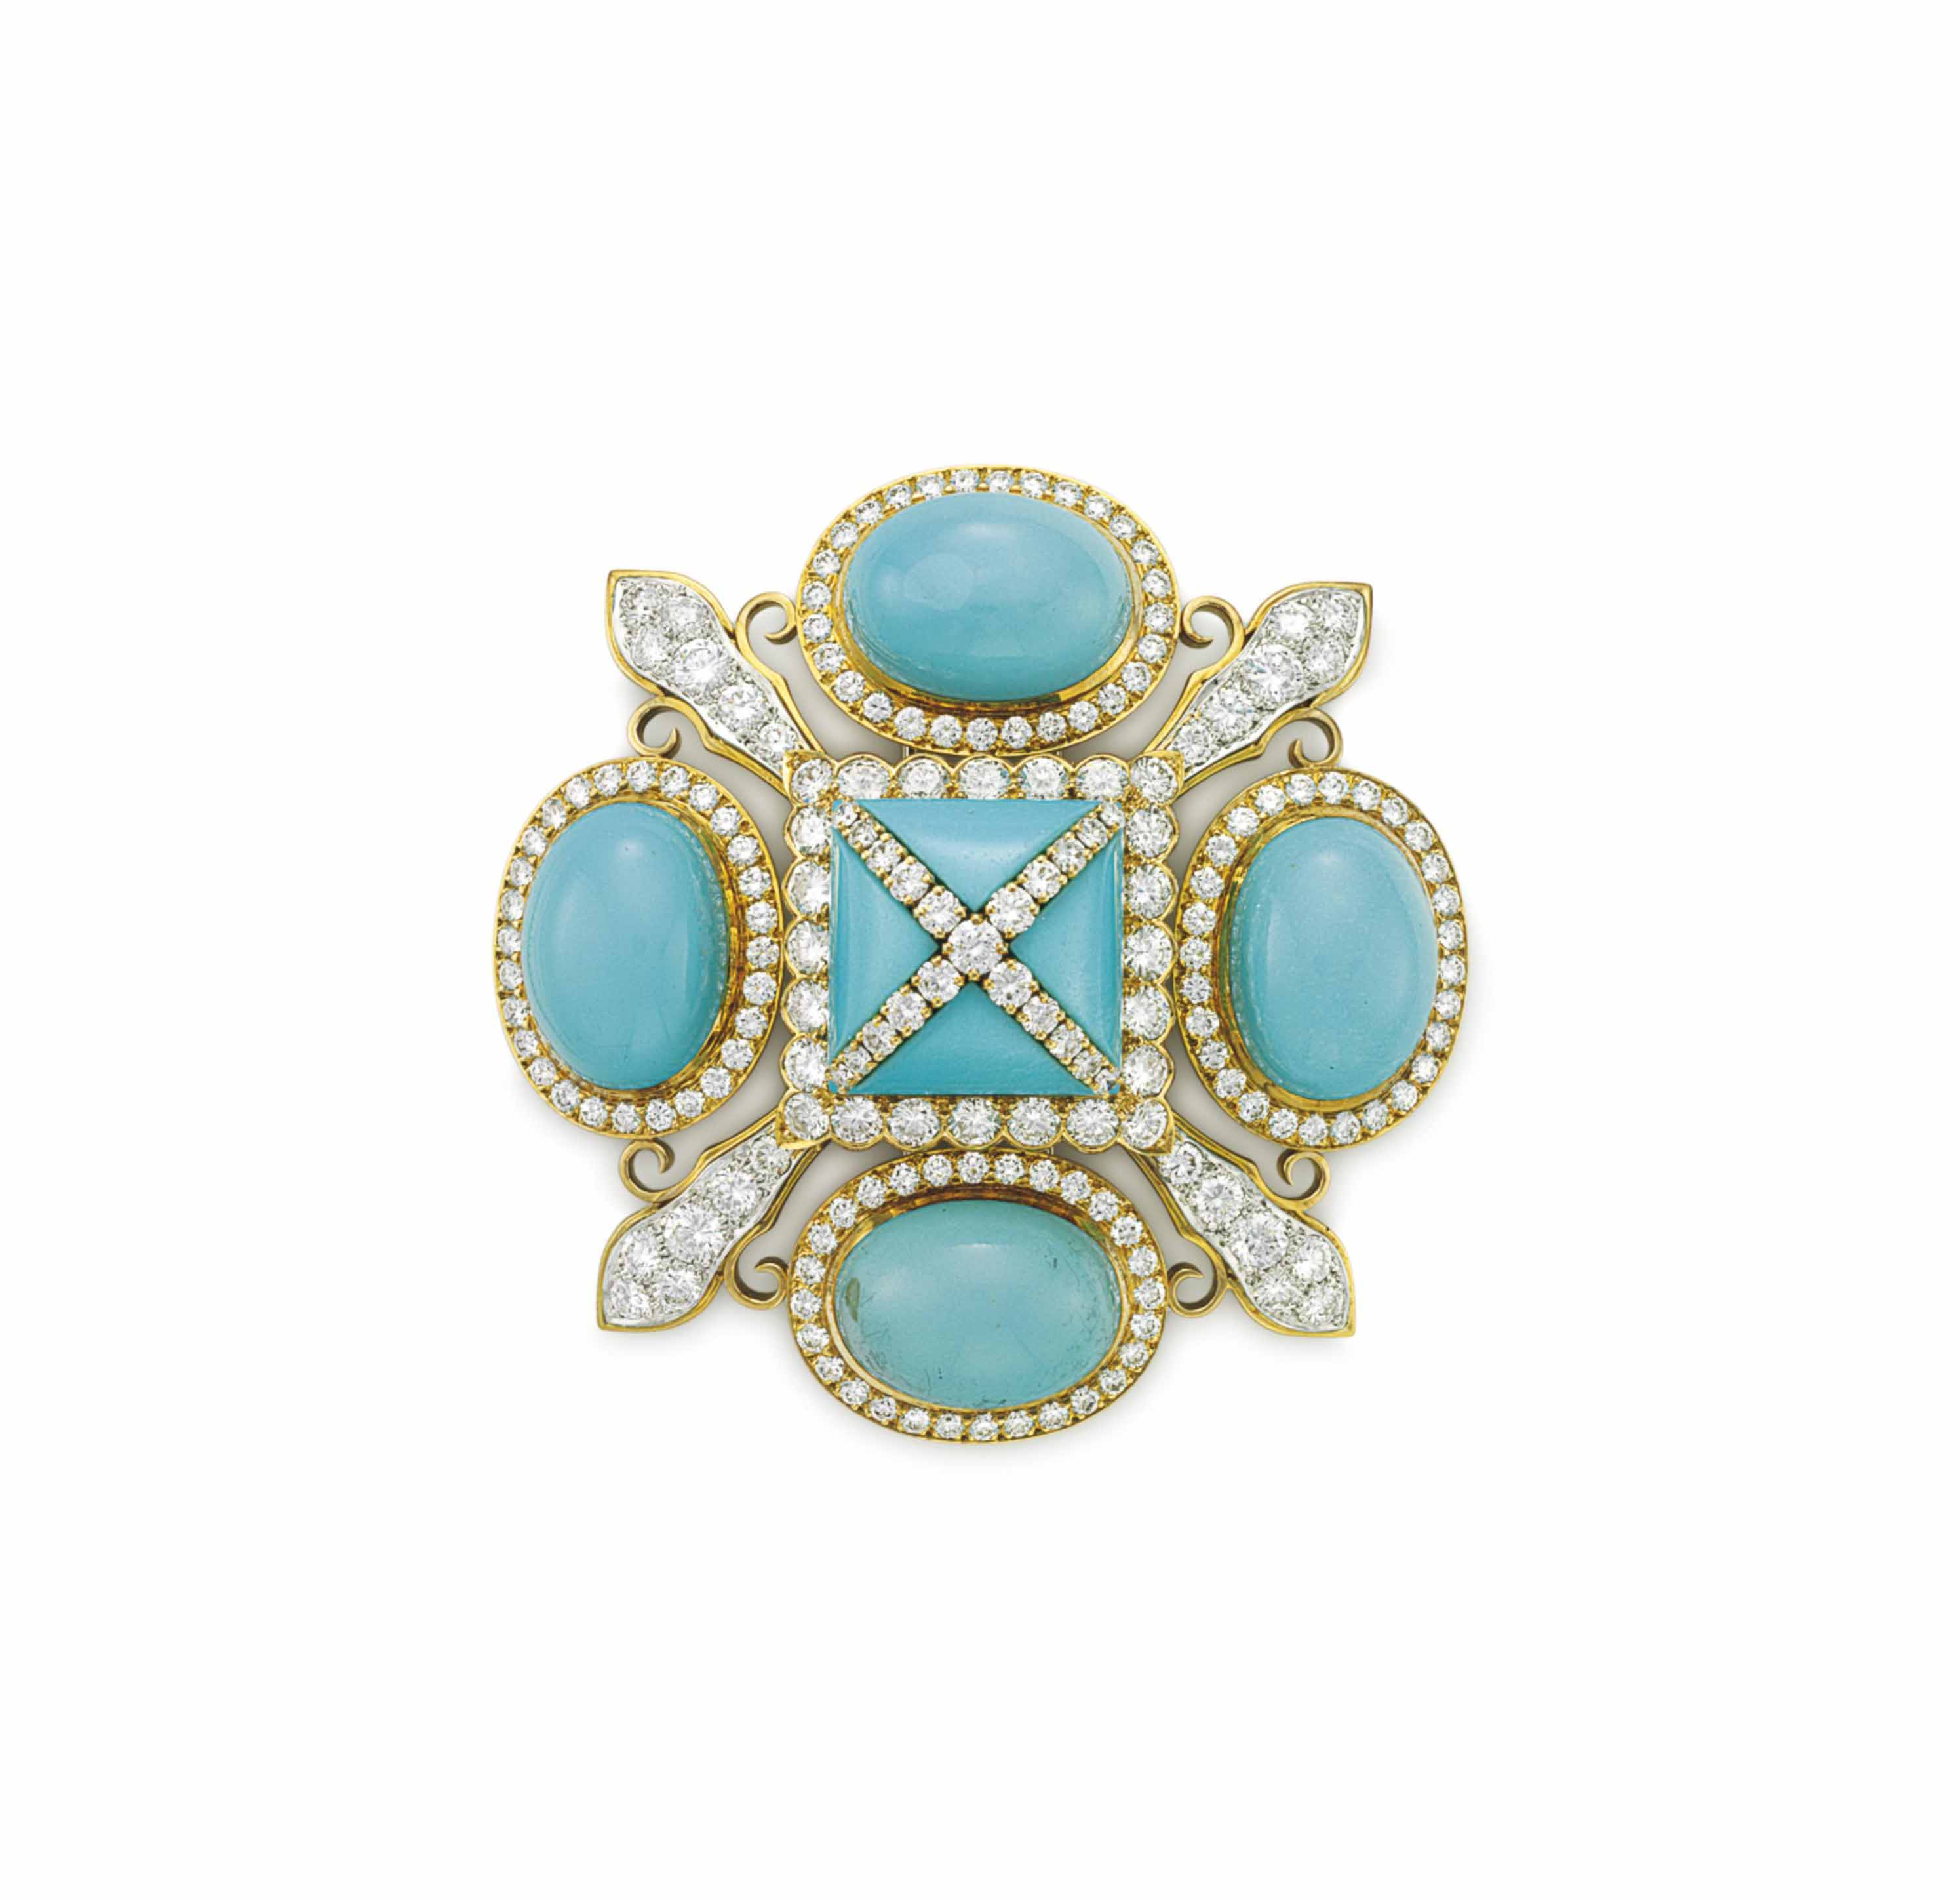 A TURQUOISE AND DIAMOND BROOCH, BY DAVID WEBB